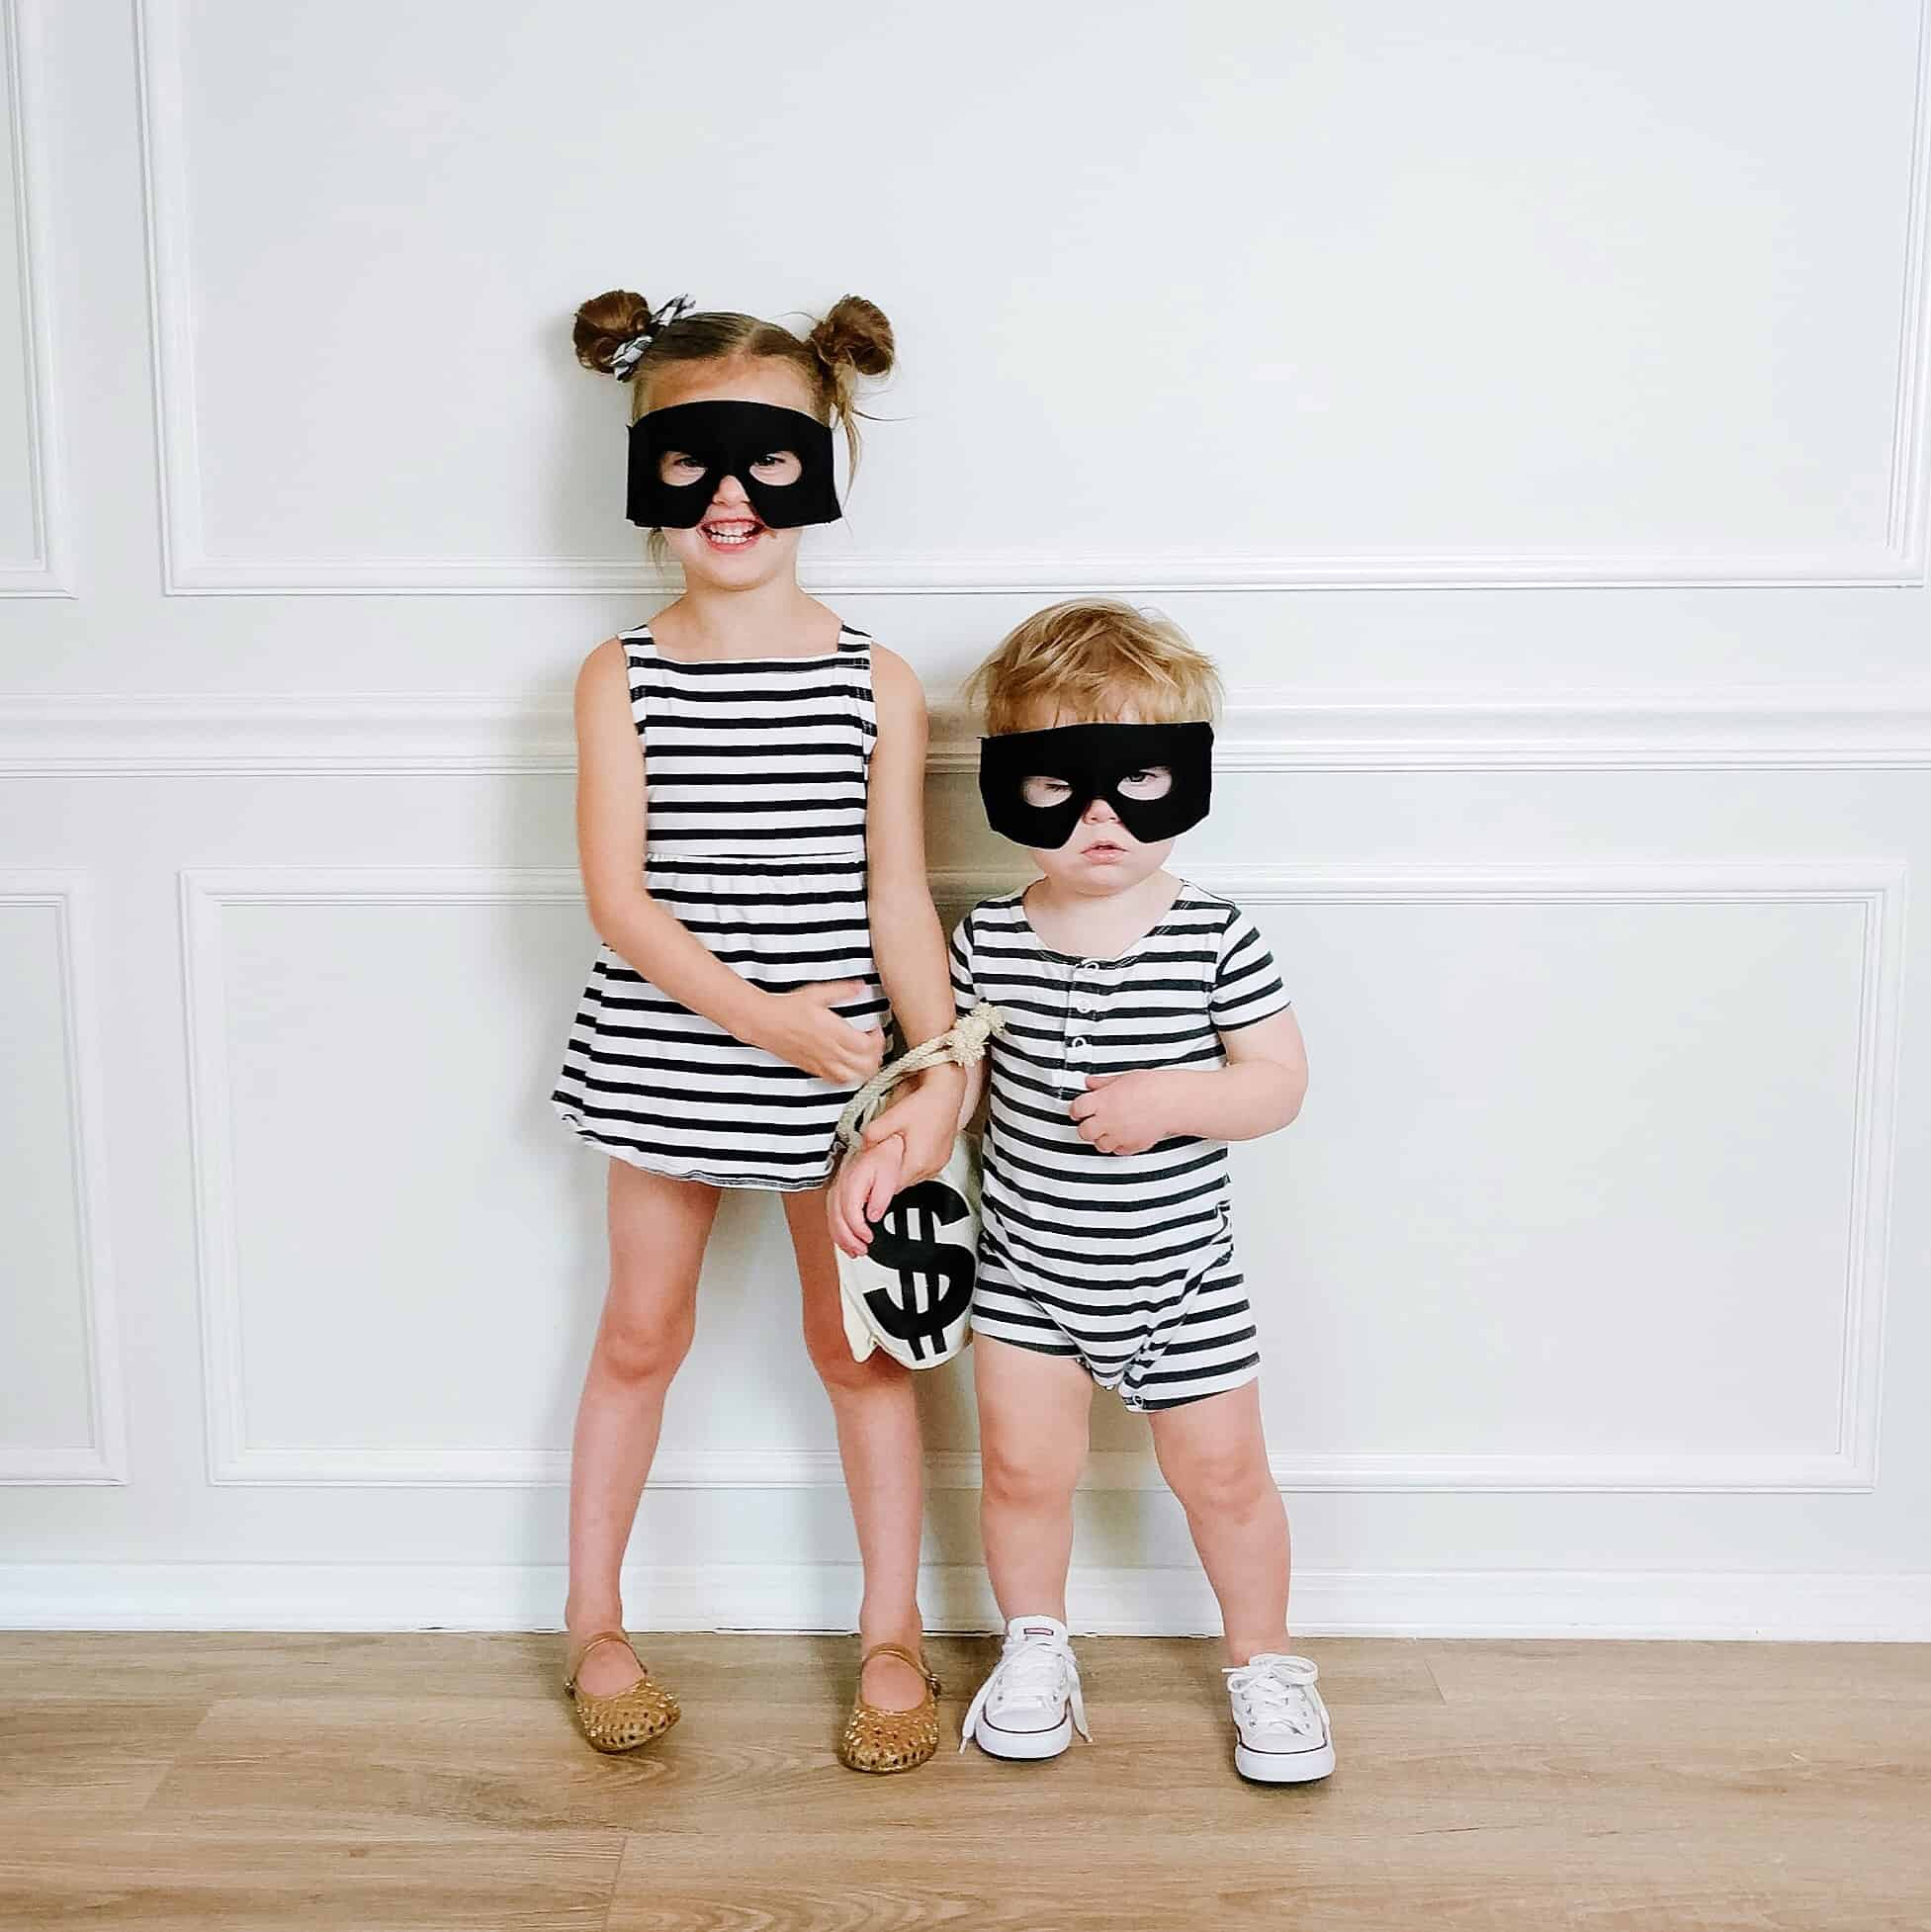 DIY robber costumes for toddlers